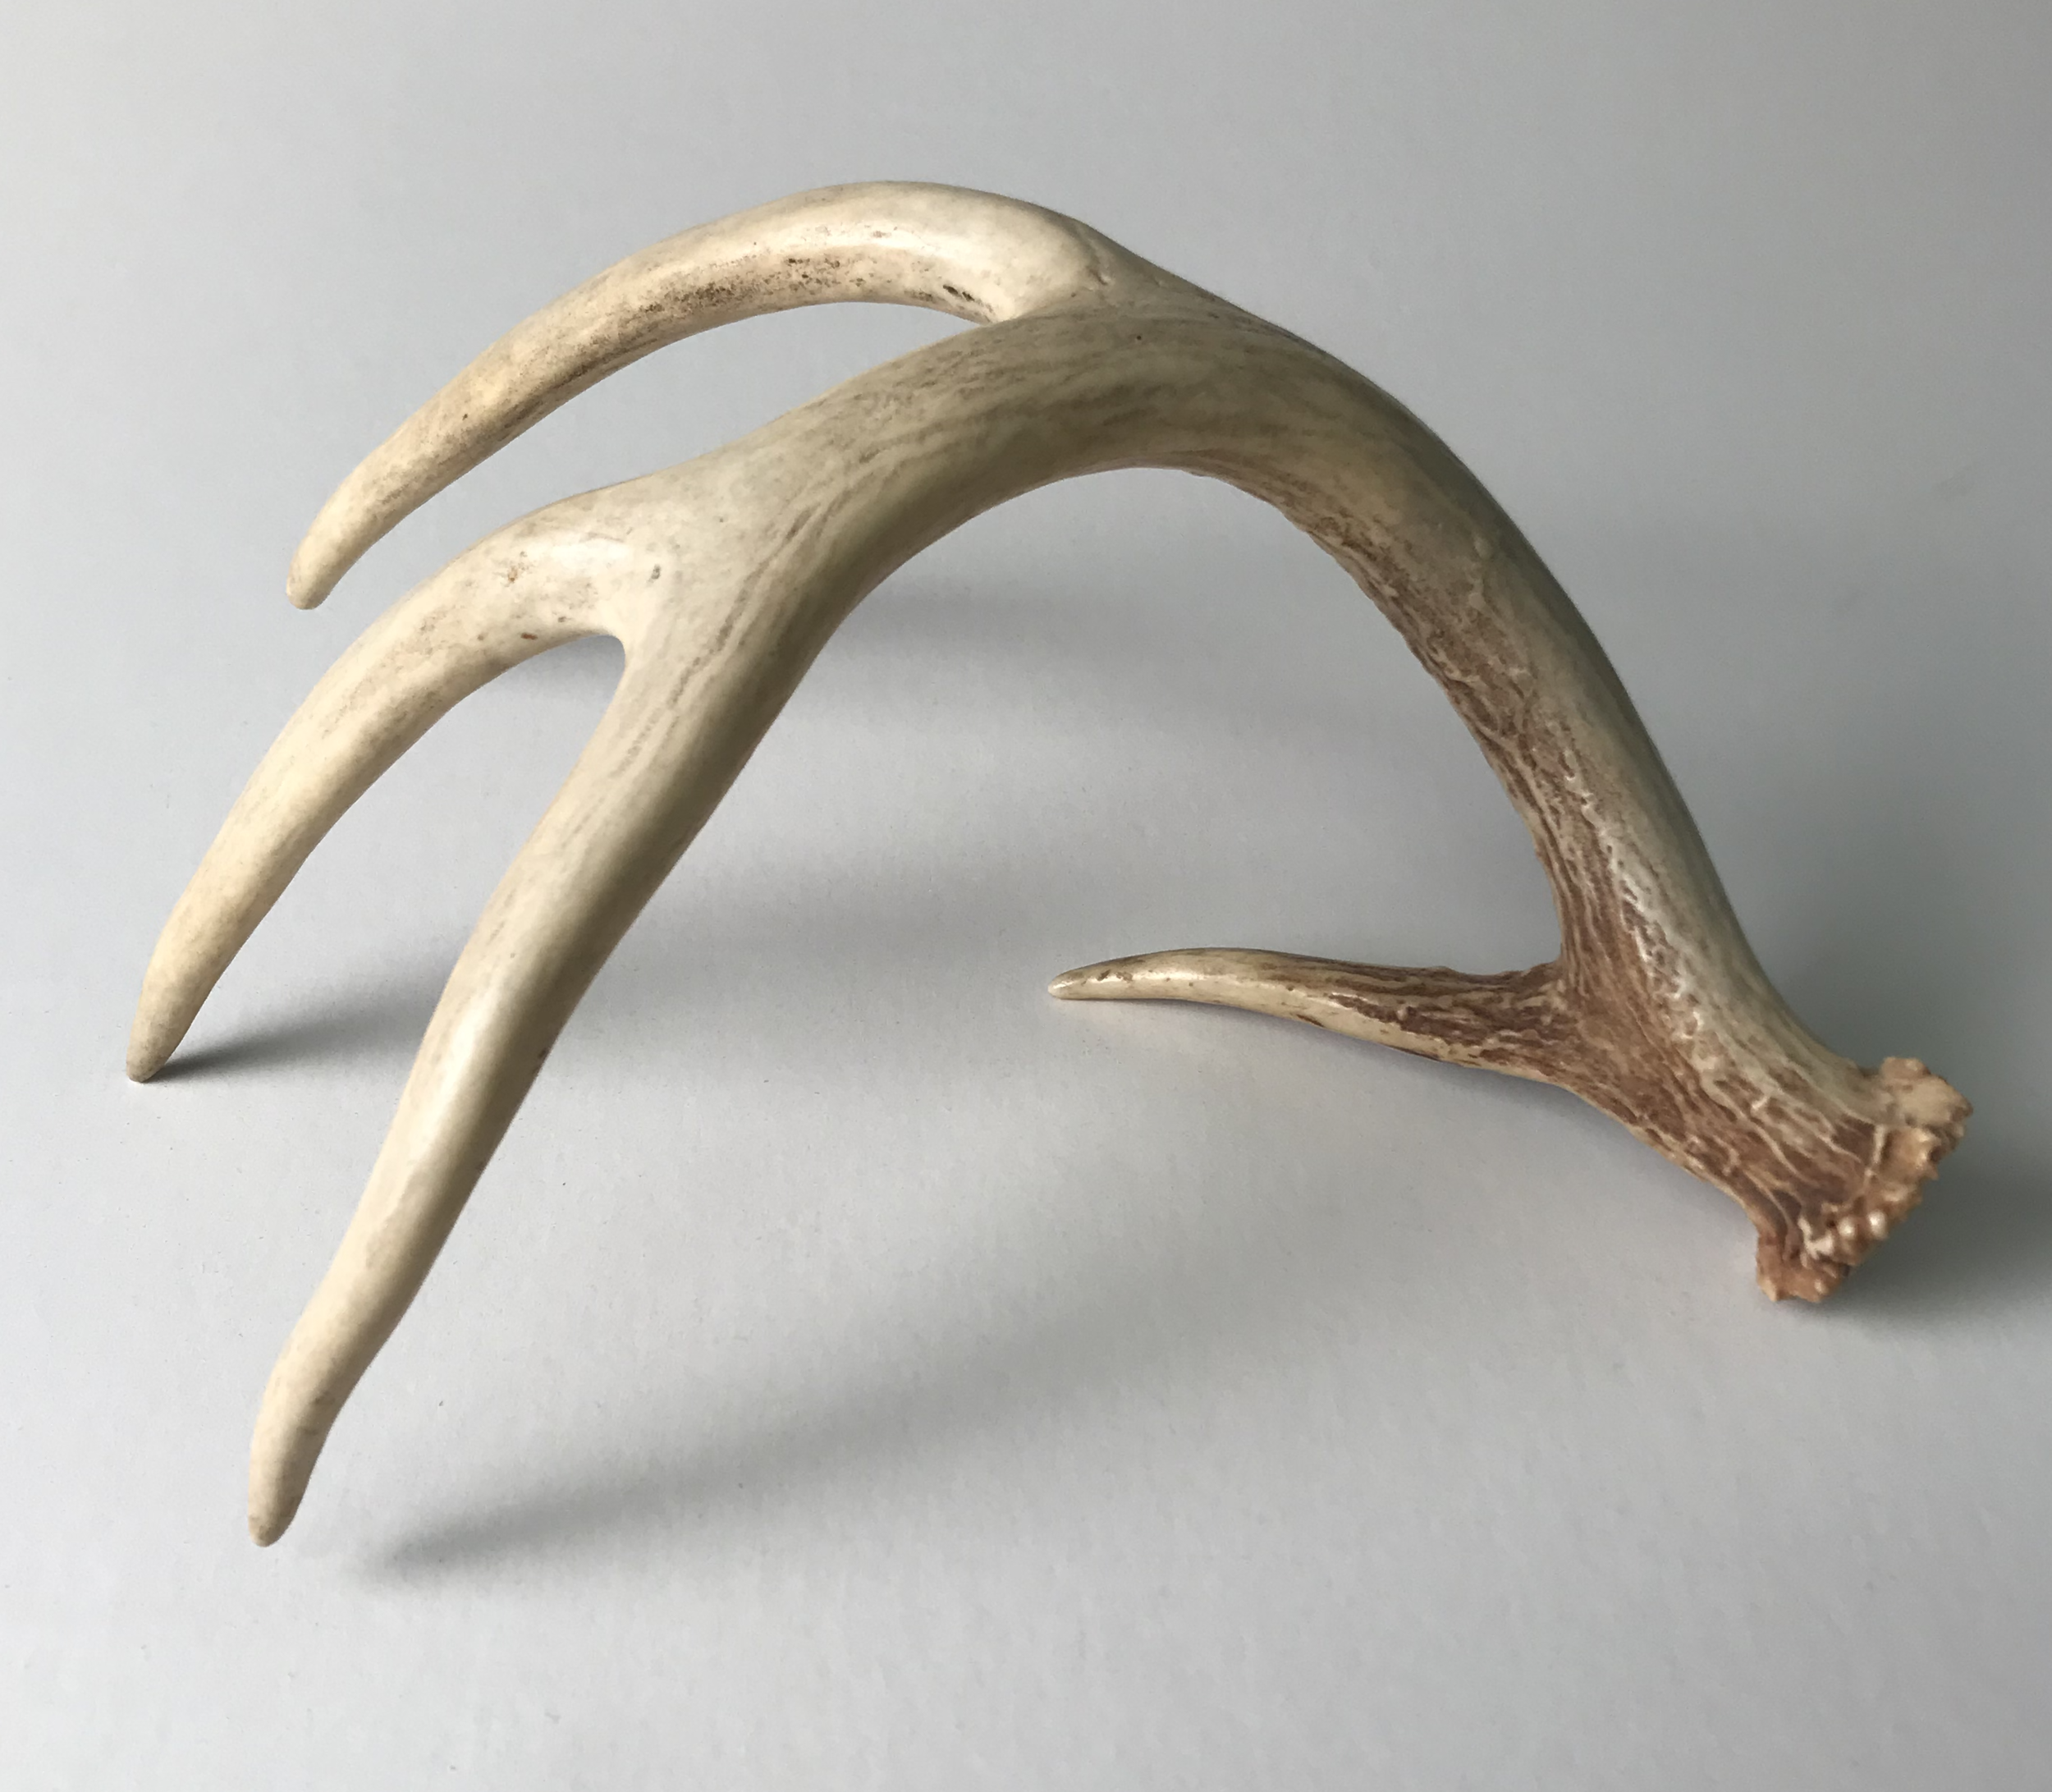 Rough Deer Antler